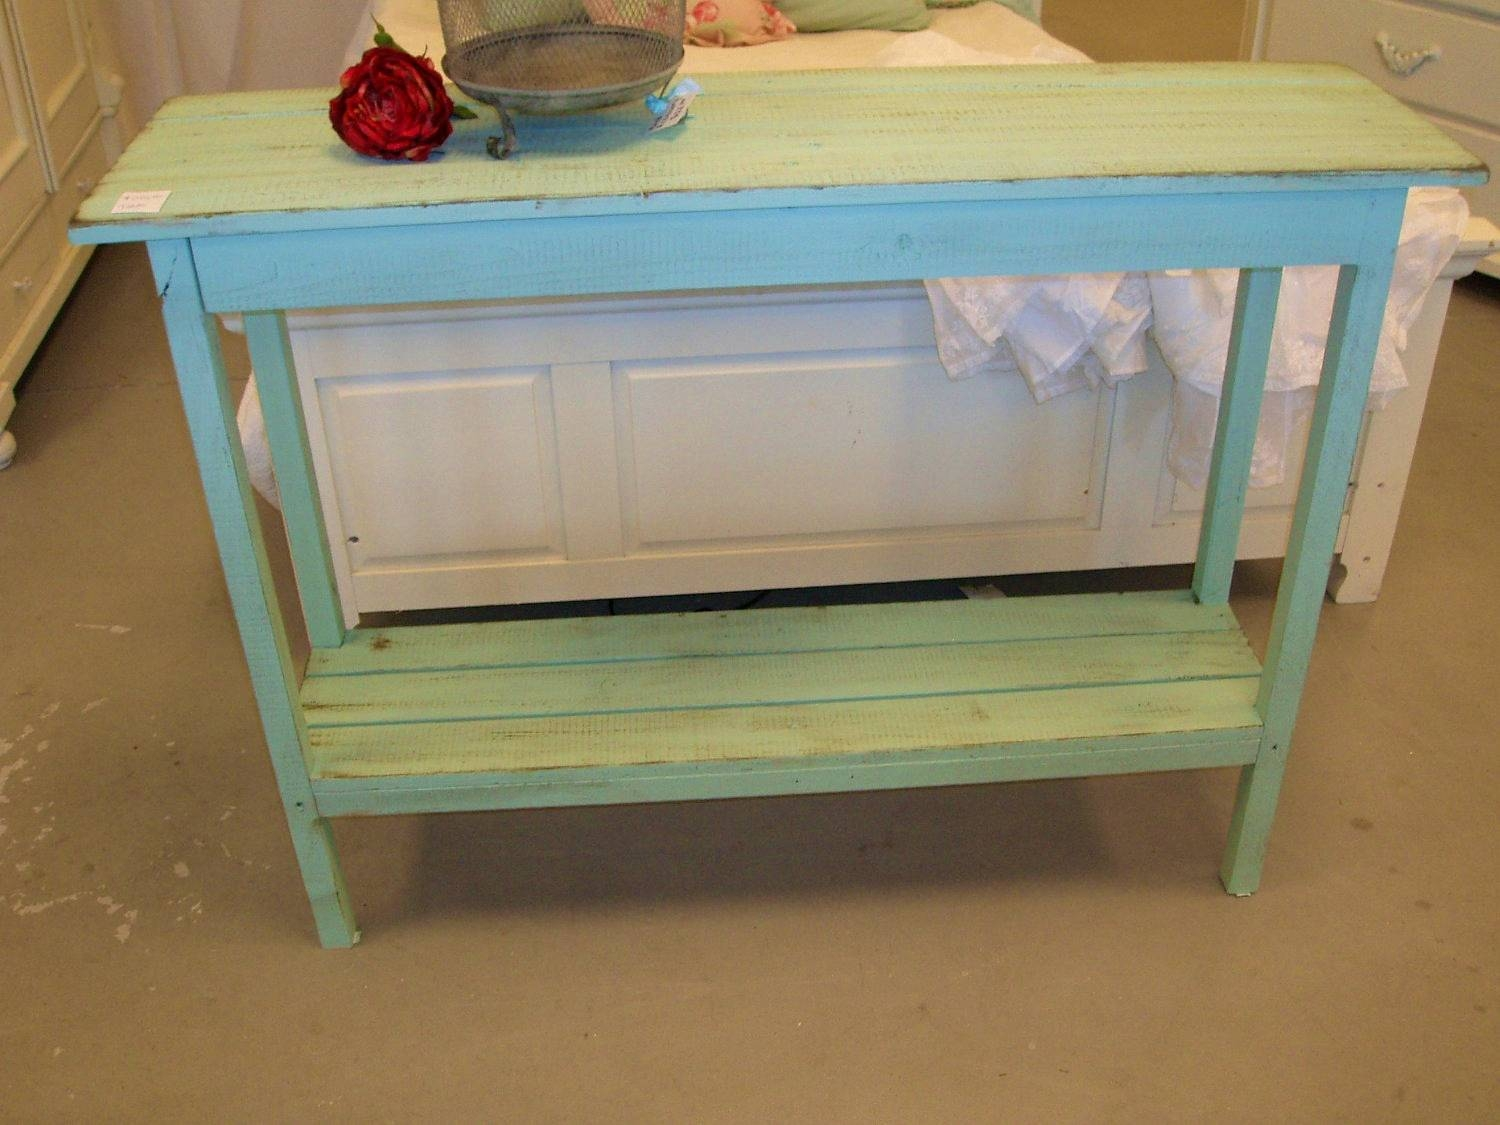 Bedroom : Cute Cottage Console Table Shabby Chic Kenryandcompany with regard to Shabby Chic Sofa Tables (Image 2 of 15)